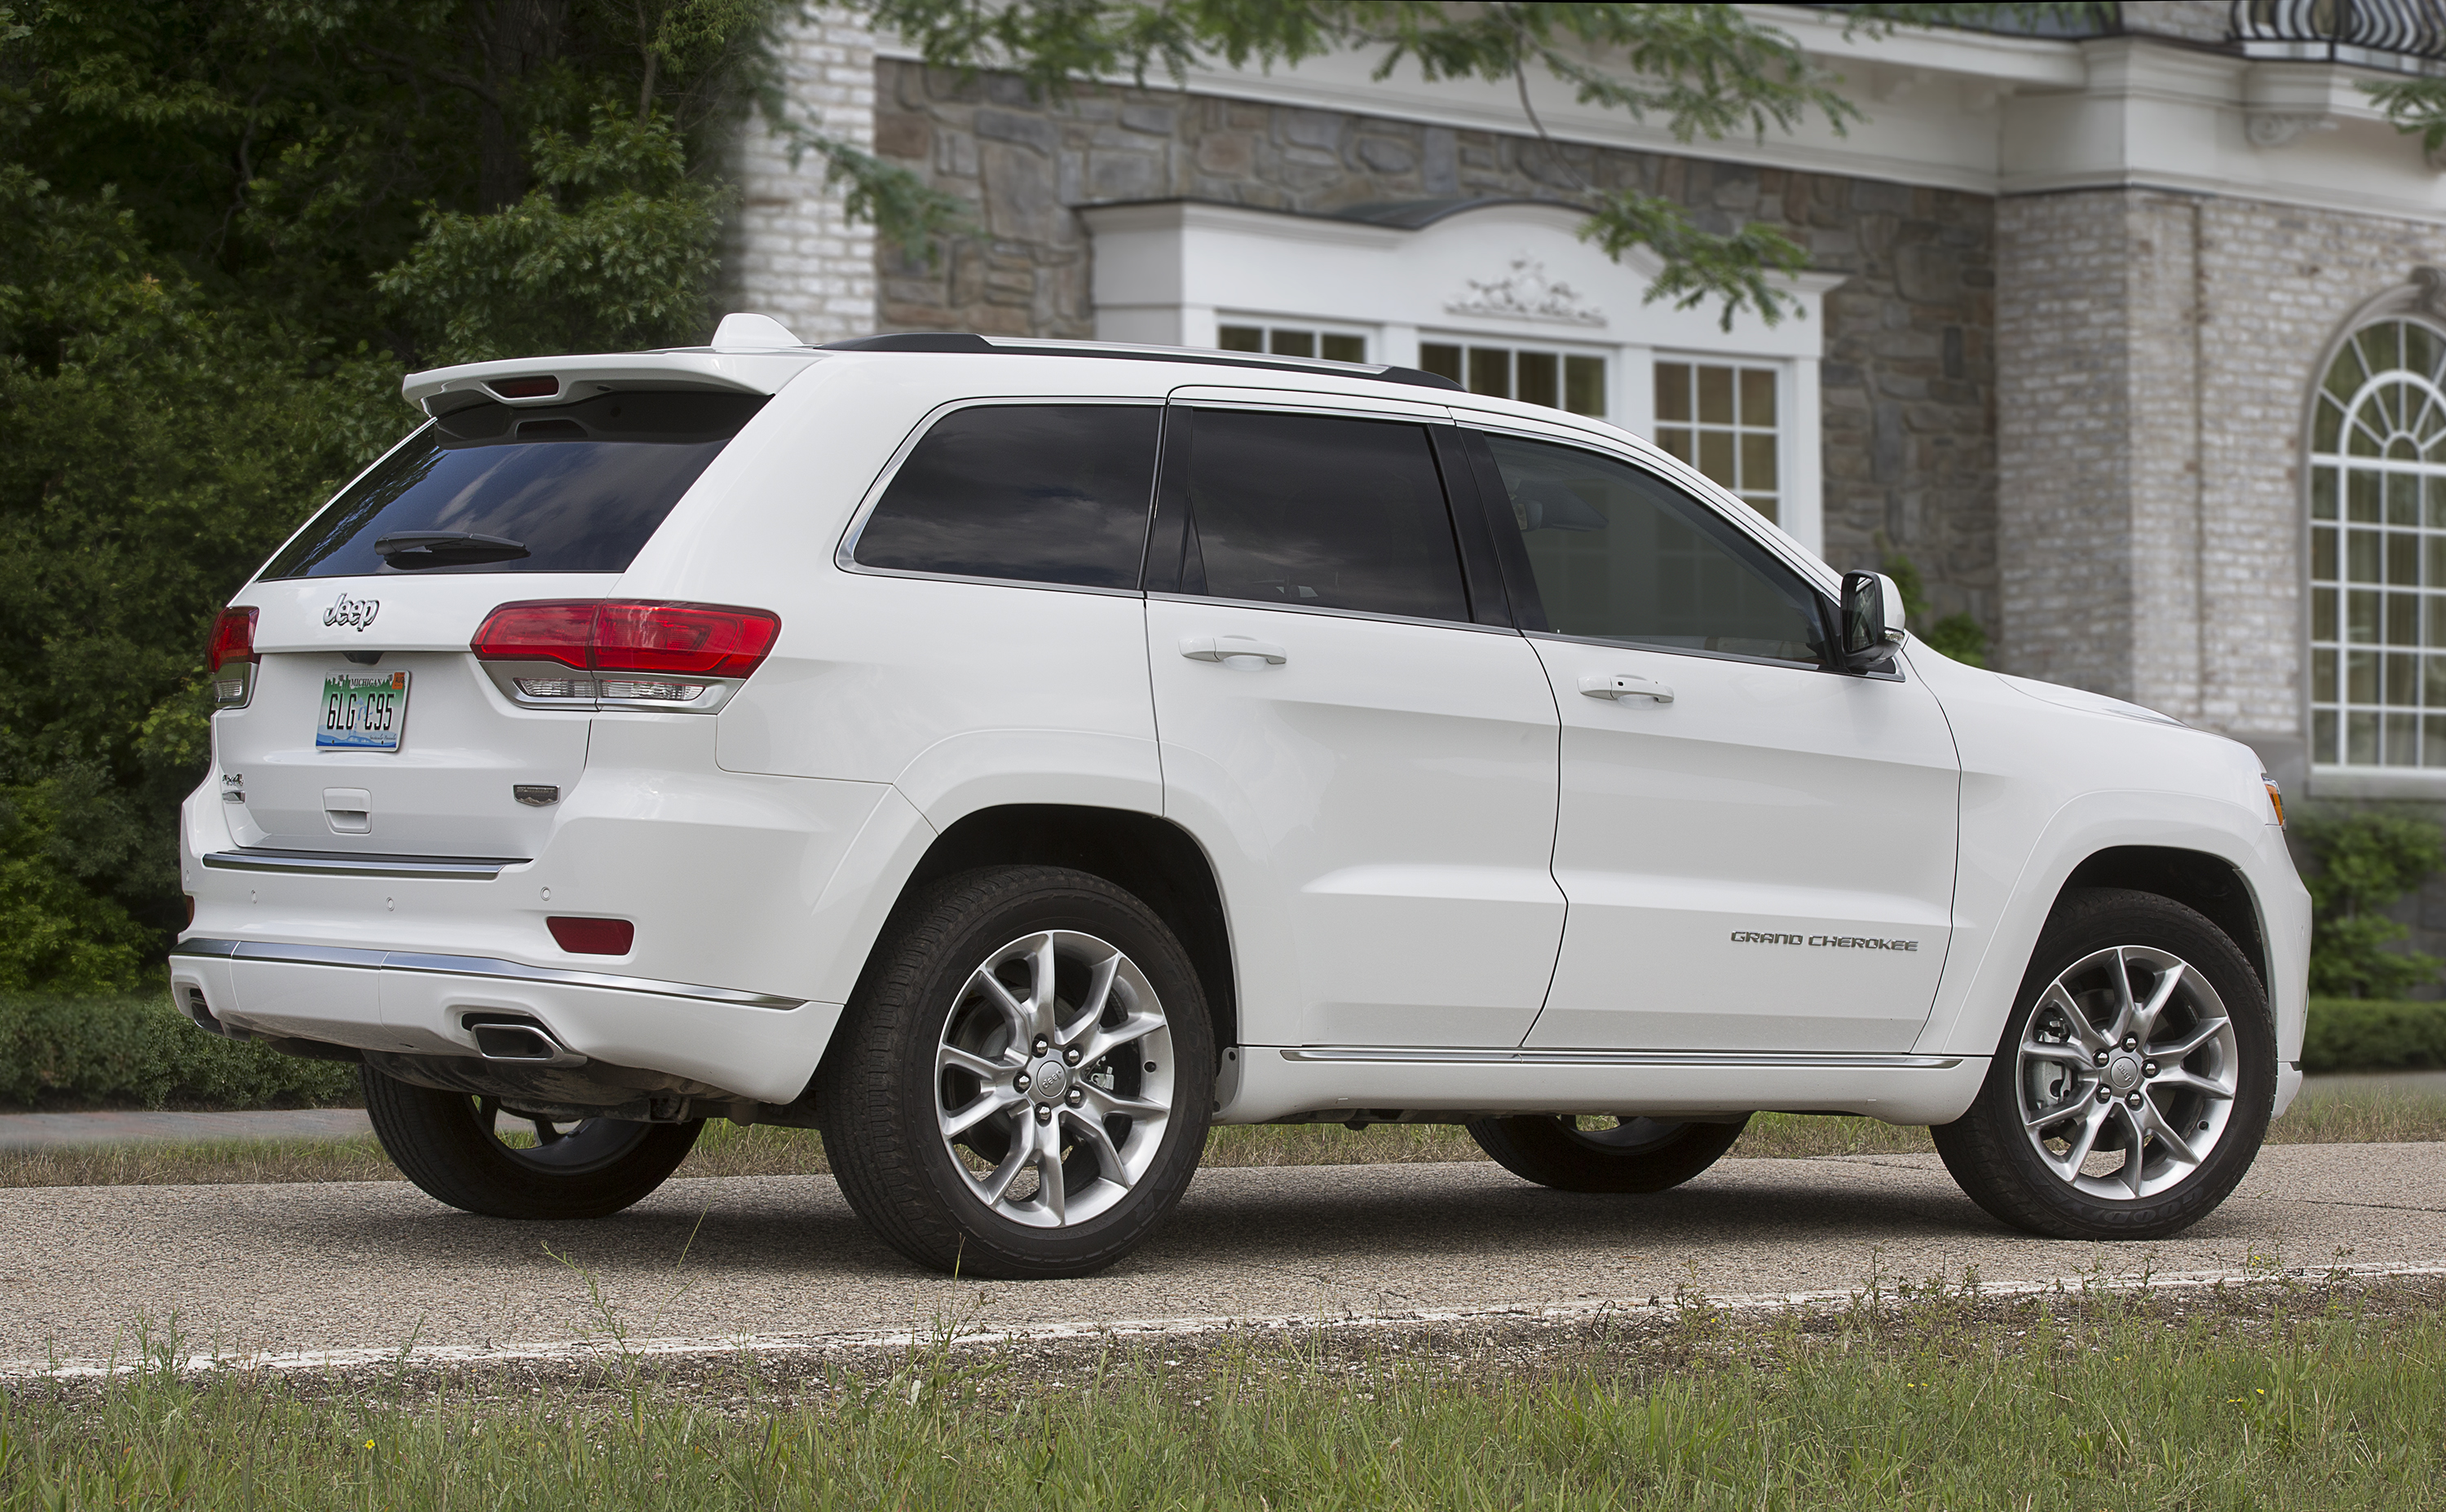 Fiat Chrysler are now facing the security issues associated with the connected car